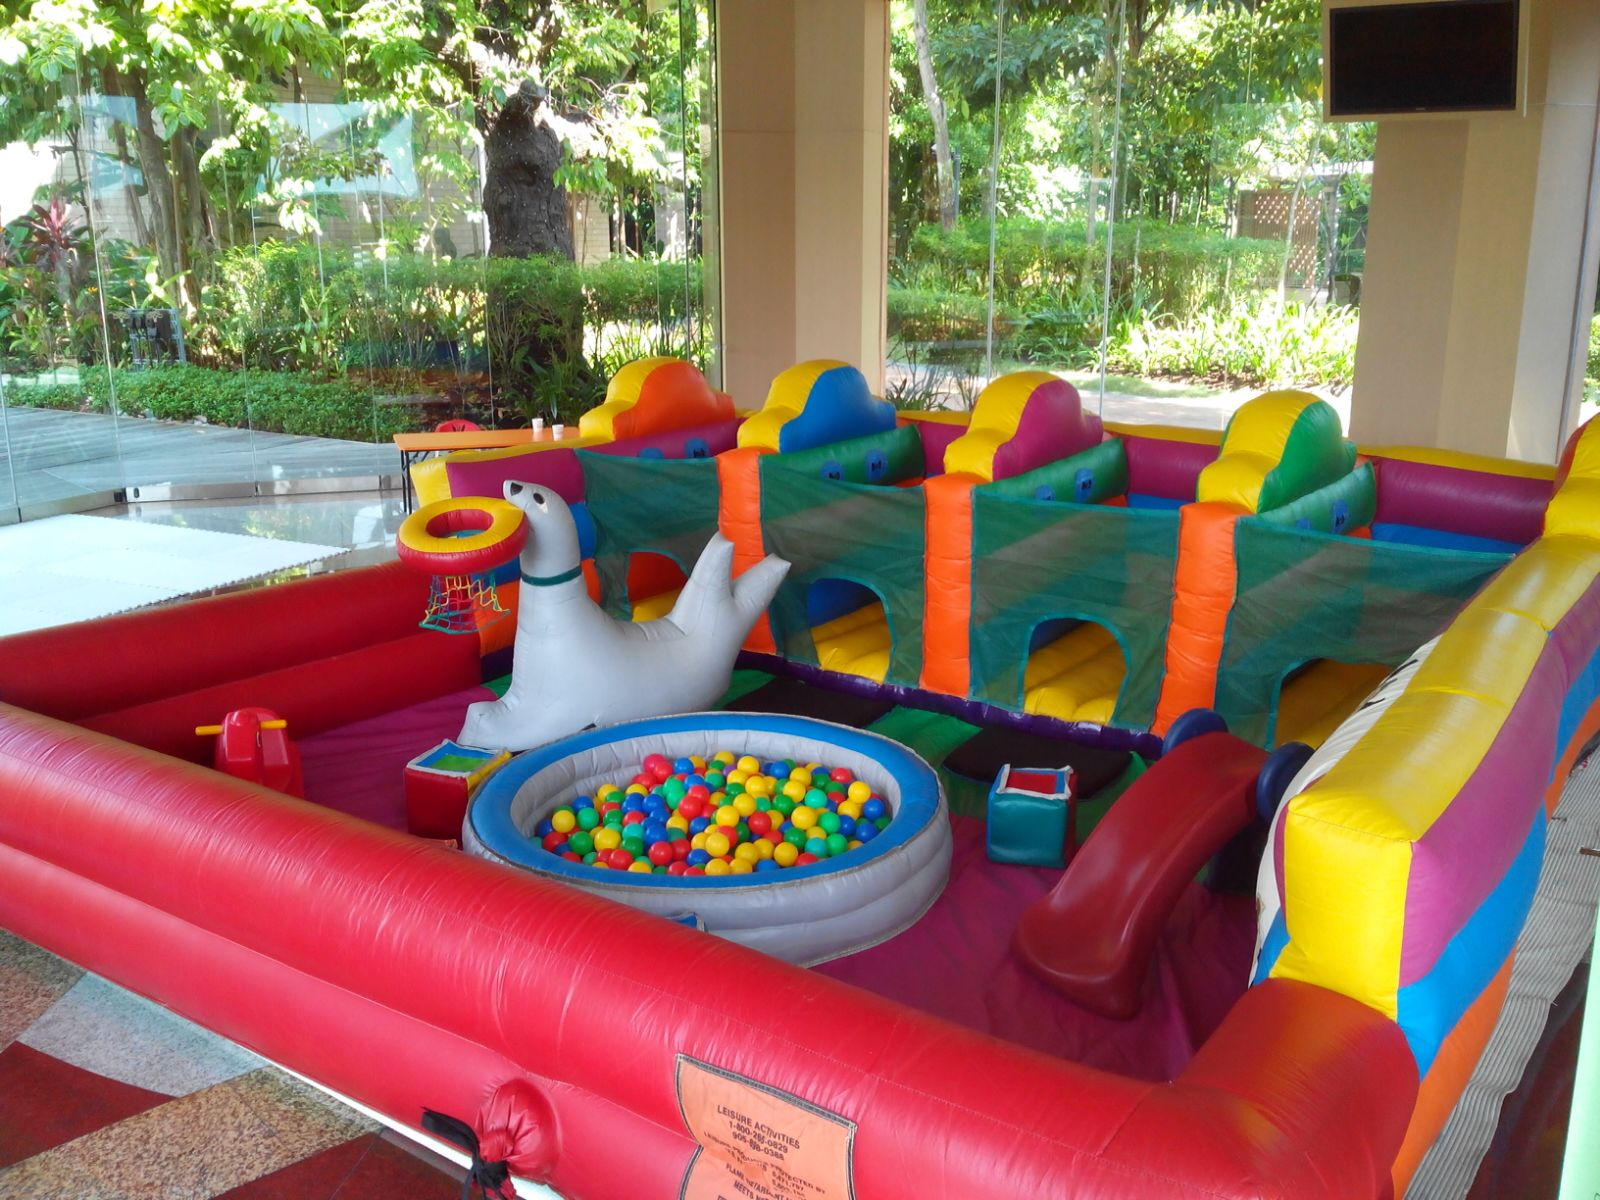 Toddlers' Playpen